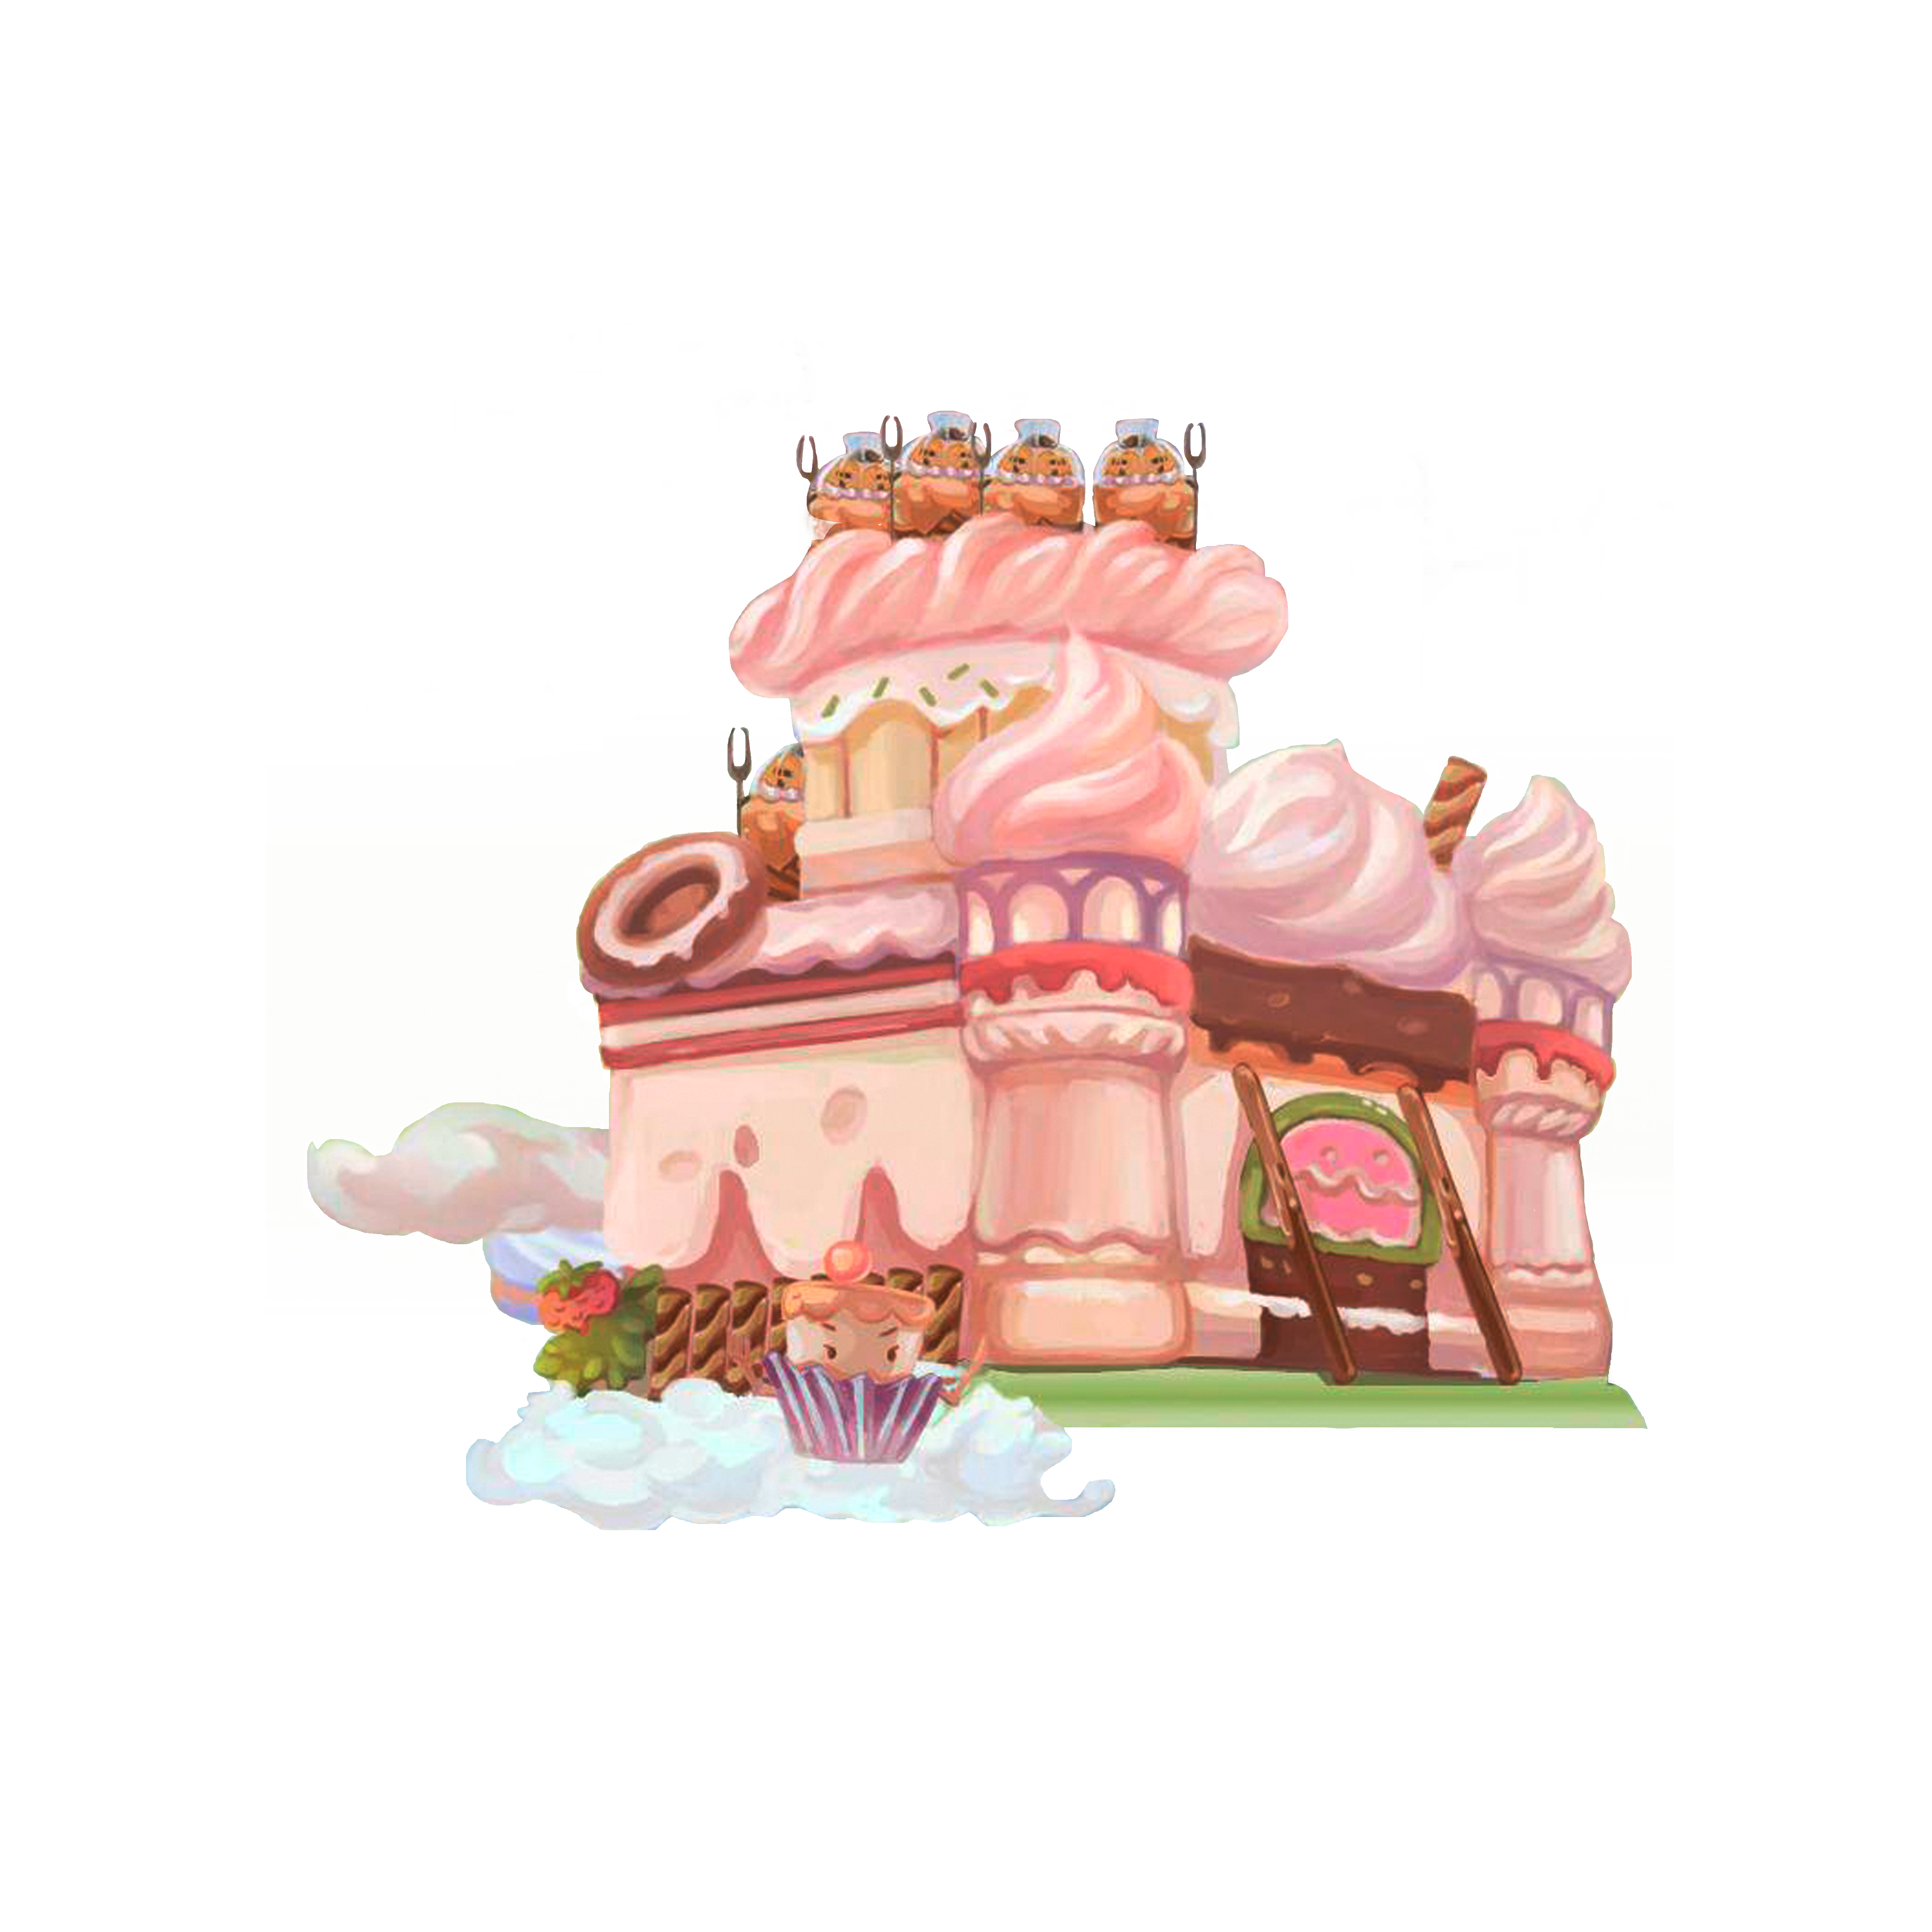 Free clipart hansel & gretel eating candy house graphic royalty free library Castle Cartoon Hansel and Gretel Illustration - Dream Castle 5000 ... graphic royalty free library